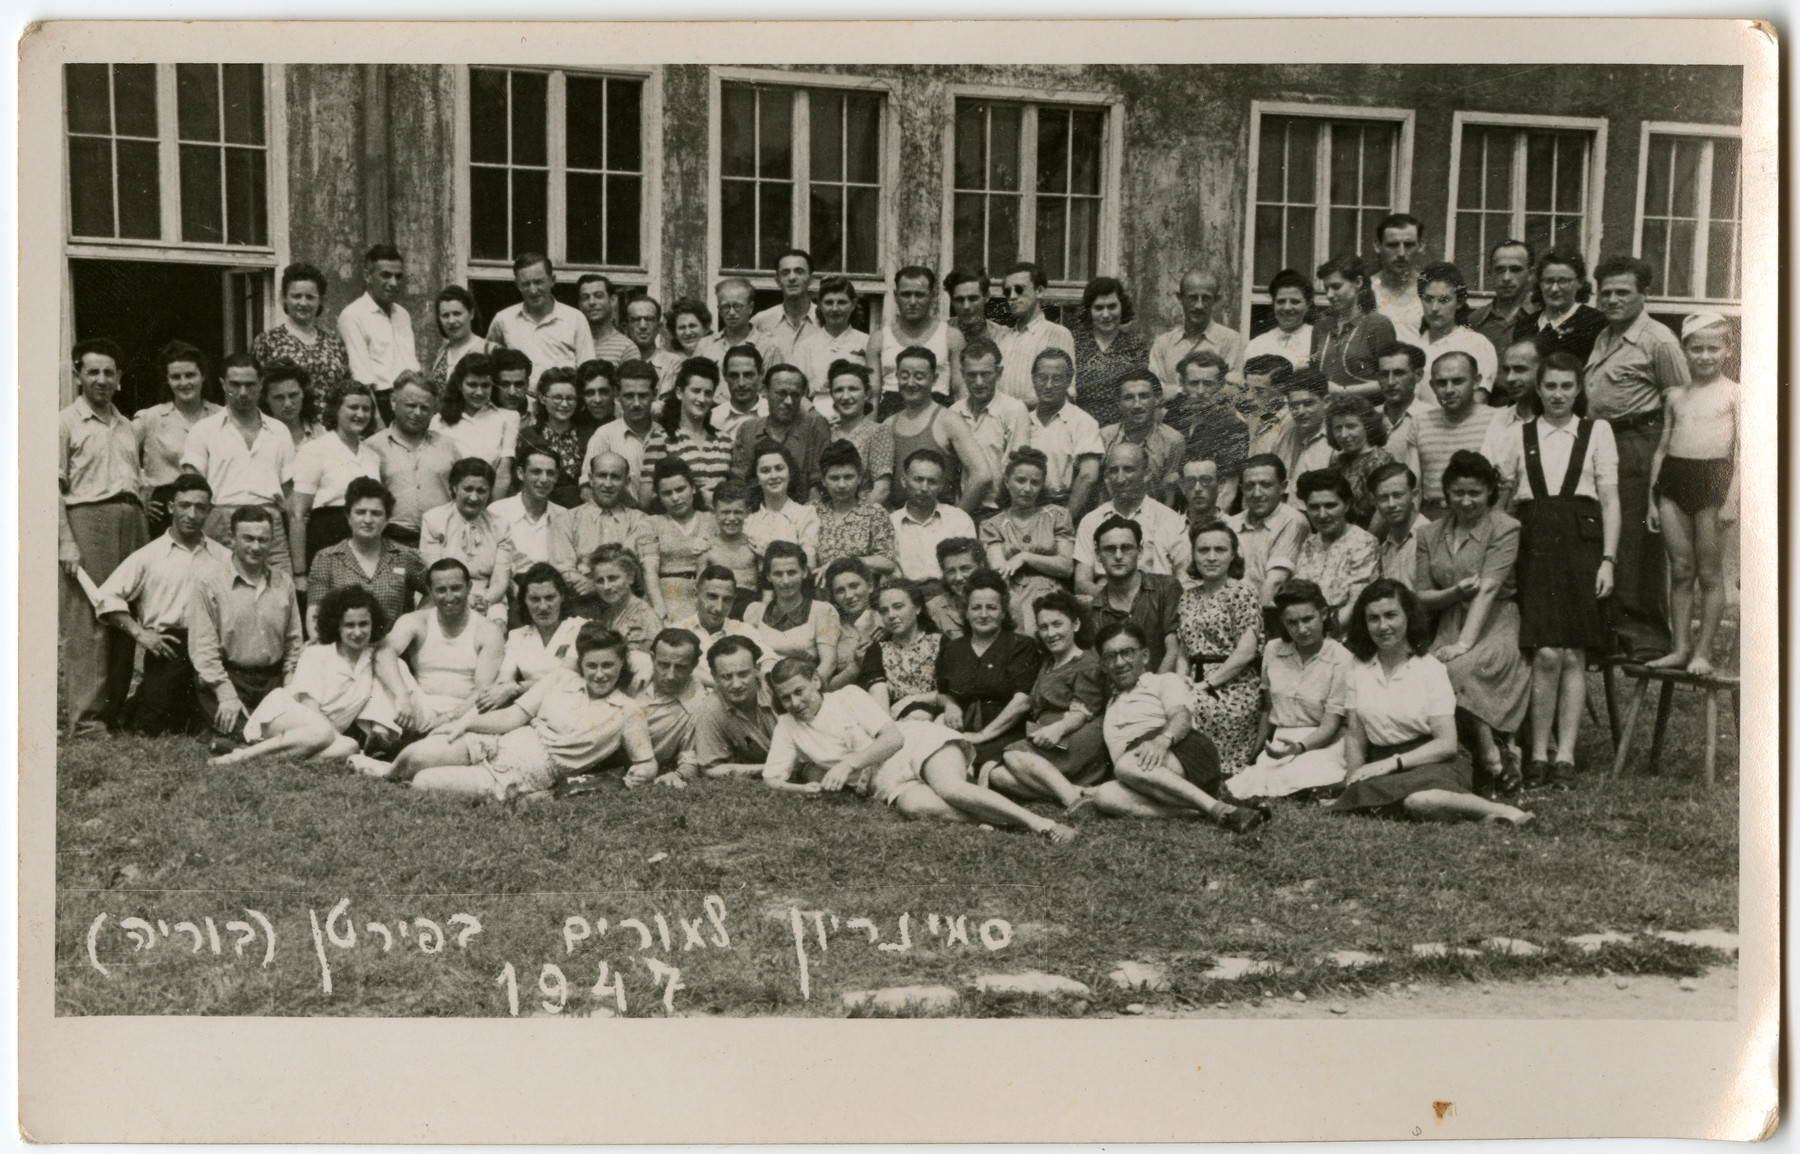 Group portrait of the students at the teacher's seminary in Puerten, Bavaria.    Laura Kimmel is pictured seated in the second row, far right.